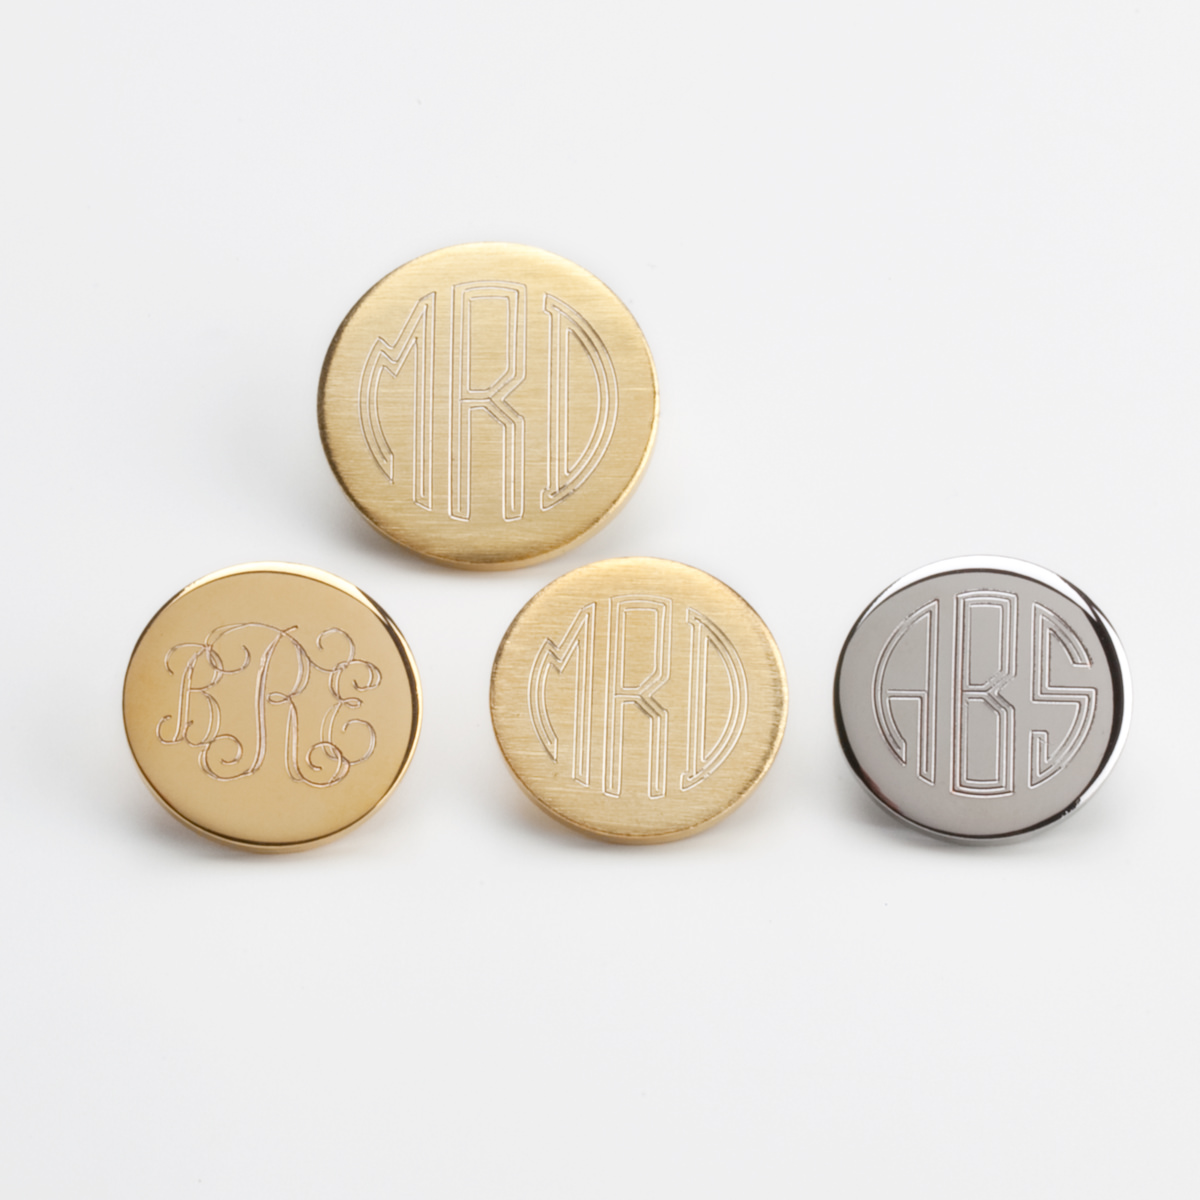 Monogrammed Blazer Buttons are the Most Special Gifts You Can Give